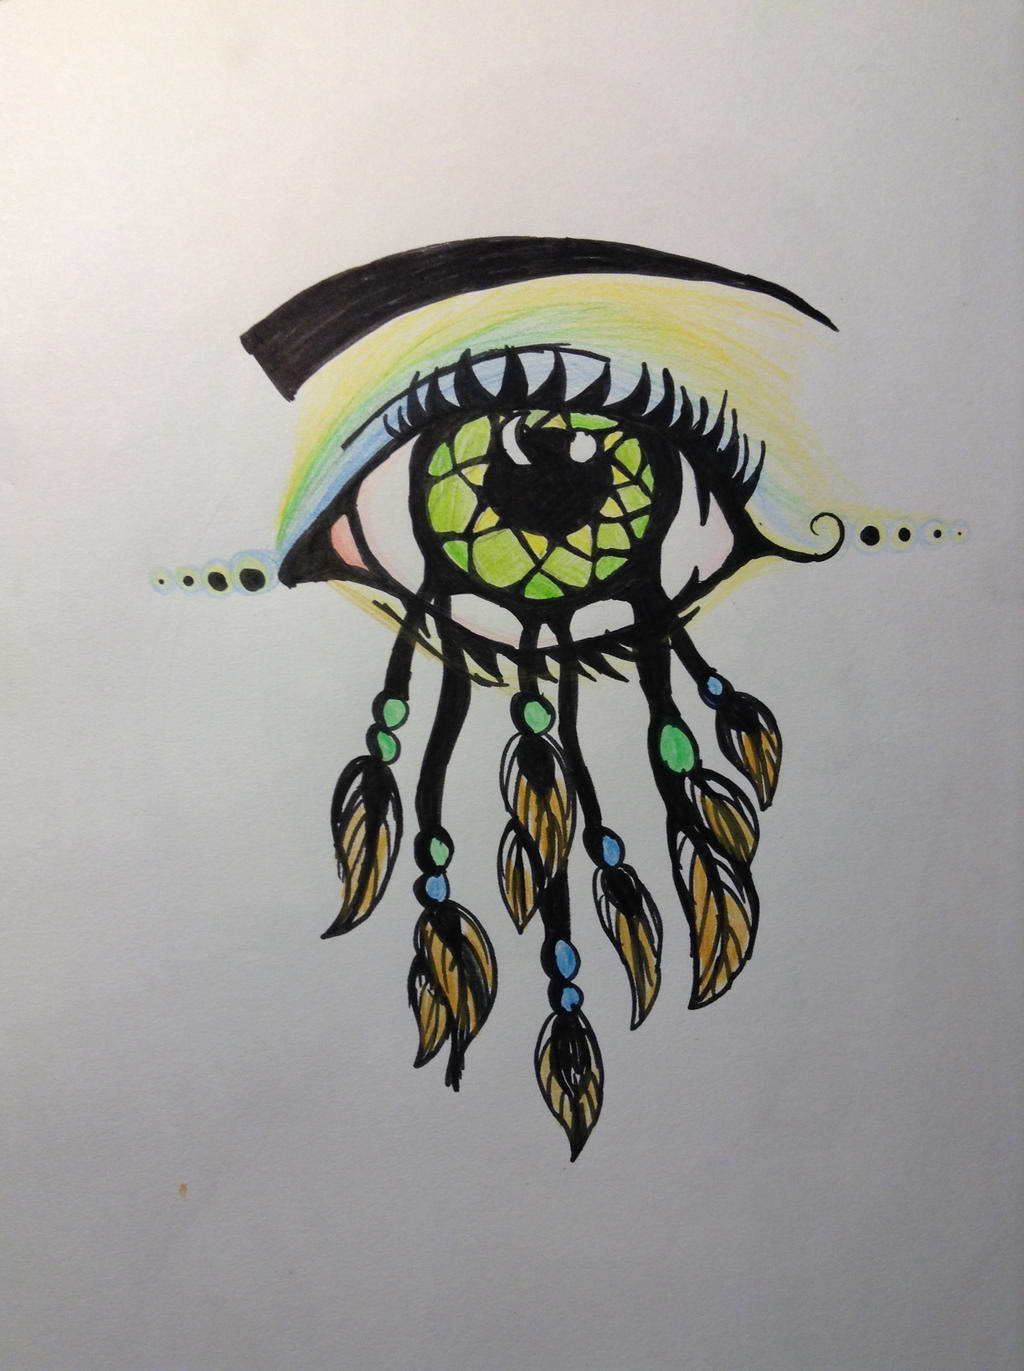 dream_catcher_eye_by_maiaolive d82vzt8